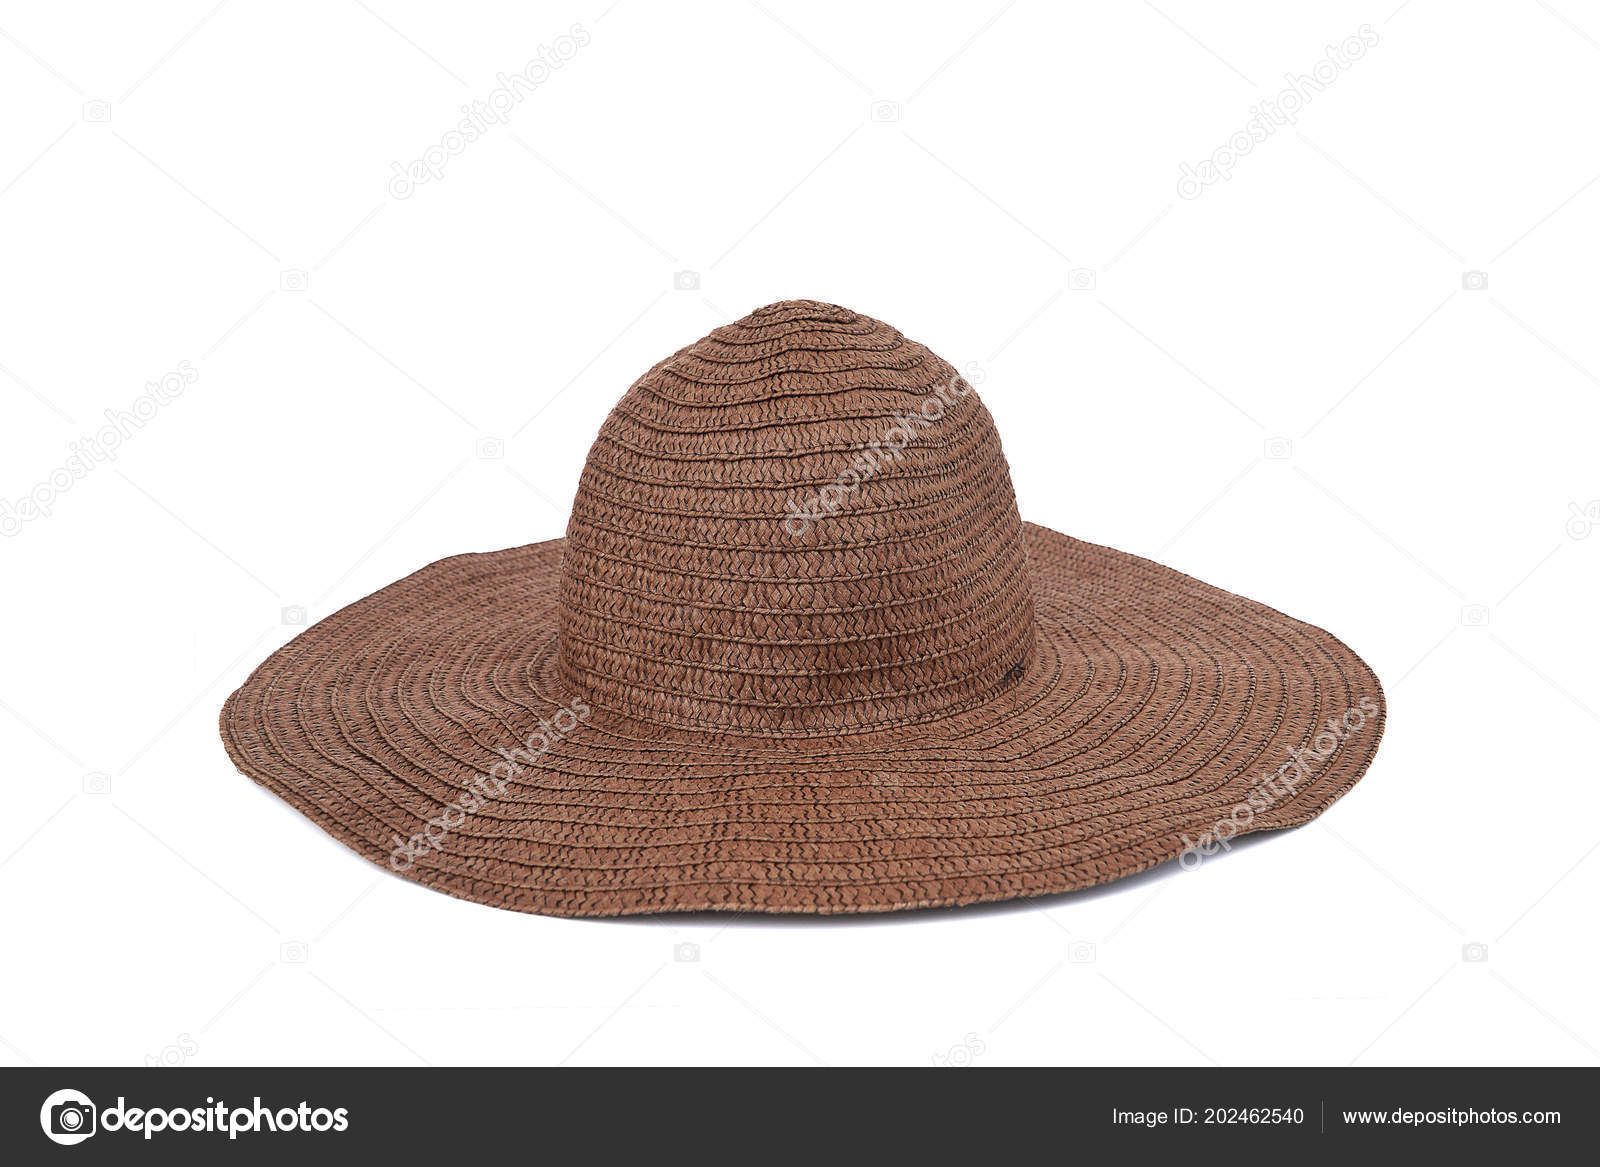 7e9cd2e3 Summer beige straw hat isolated on white background.Close up of handcraft weave  wide brim hat made from reed,bamboo,rattan.Decoration on plain design.